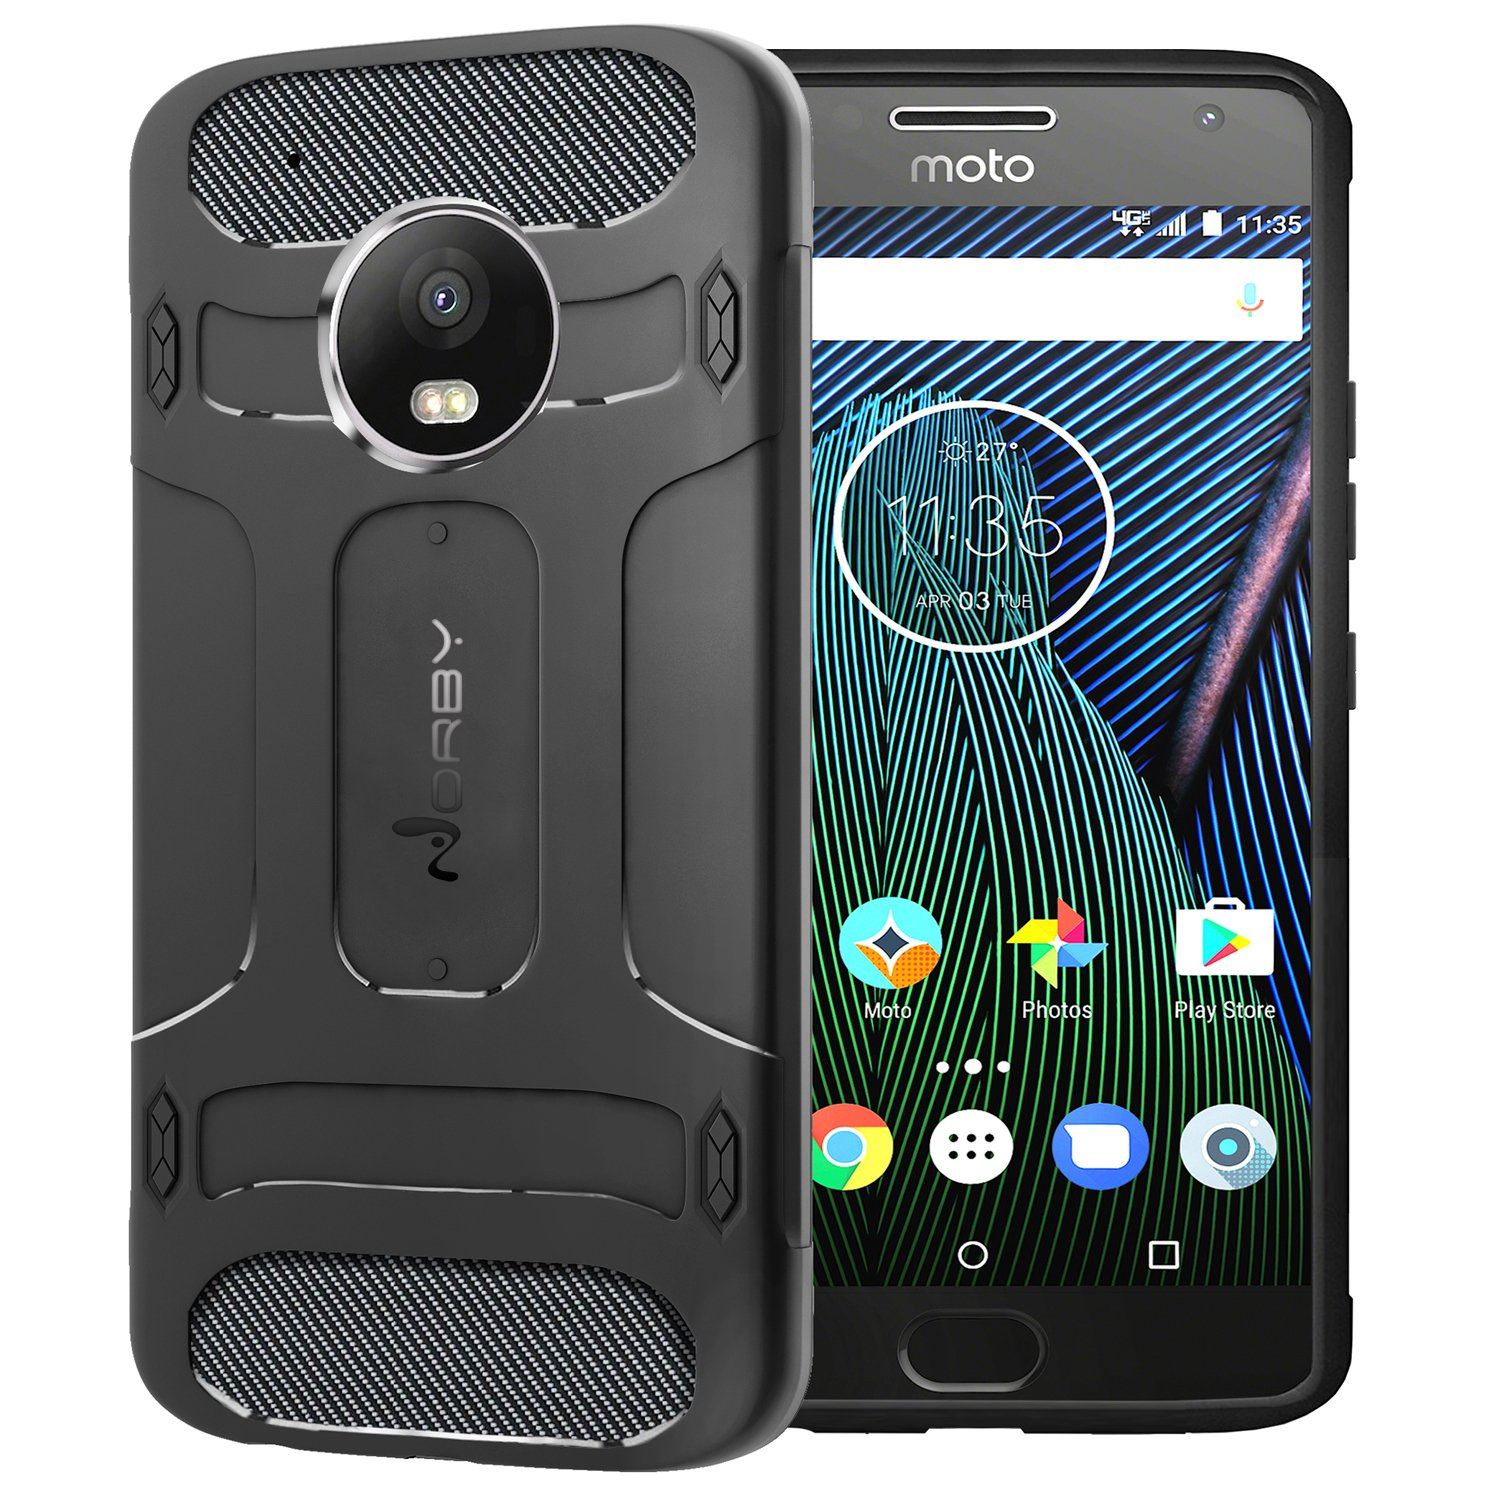 new styles 994c2 9935b Norby Moto G5 Plus Rugged Shock Proof Sleek Armor 360 Degree Protection  Guard Back Cover Case for Motorola Moto G5 Plus (Black) + 6 Months Warranty